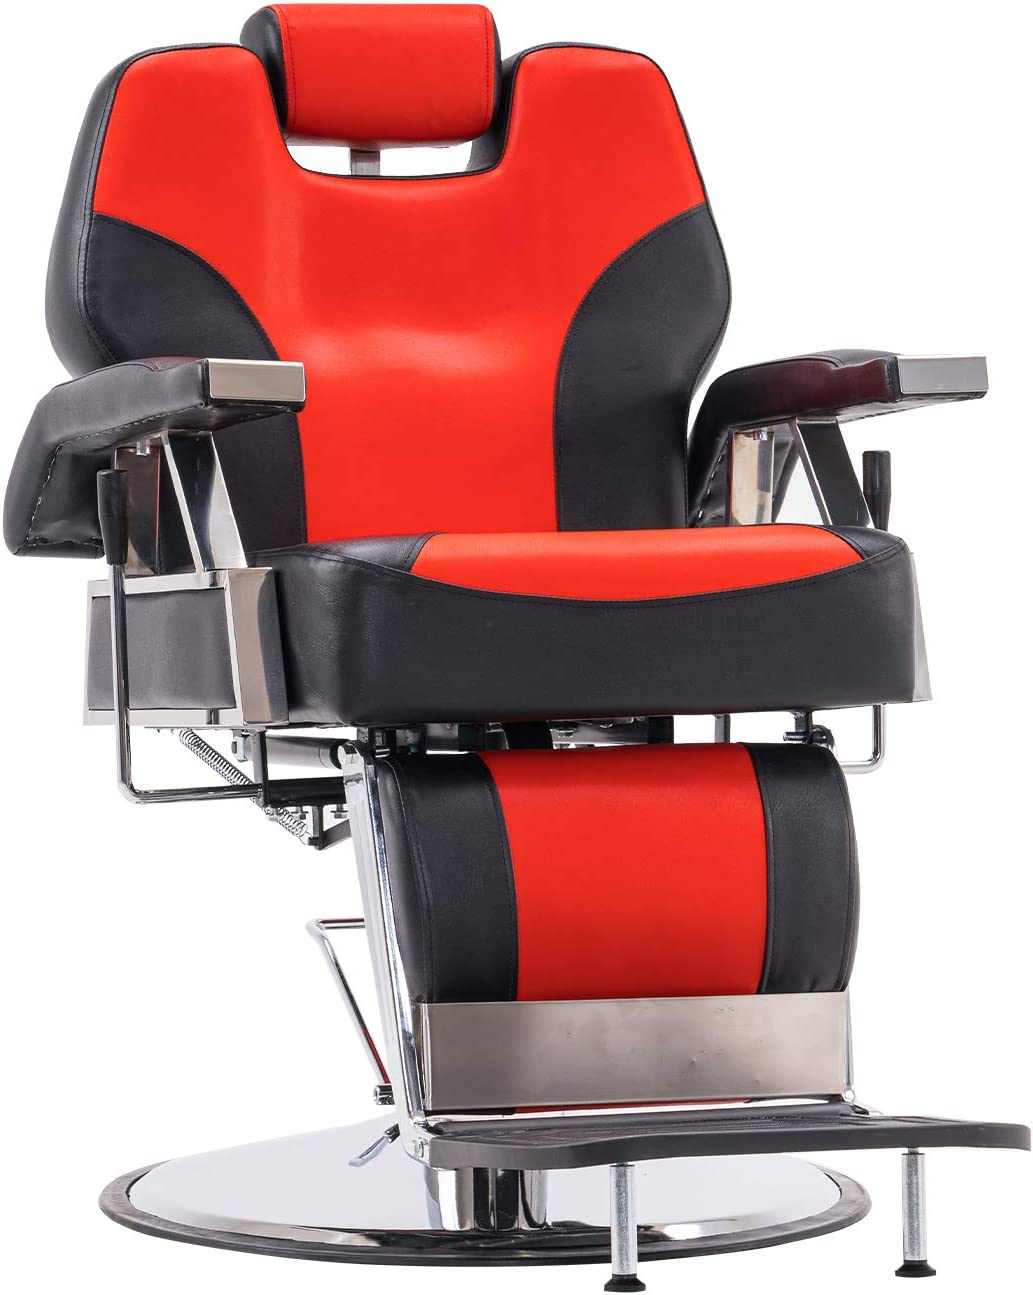 BarberPub Heavy Duty Safety Max 75% OFF and trust Recline Barber Chair All Purpose Hydraulic